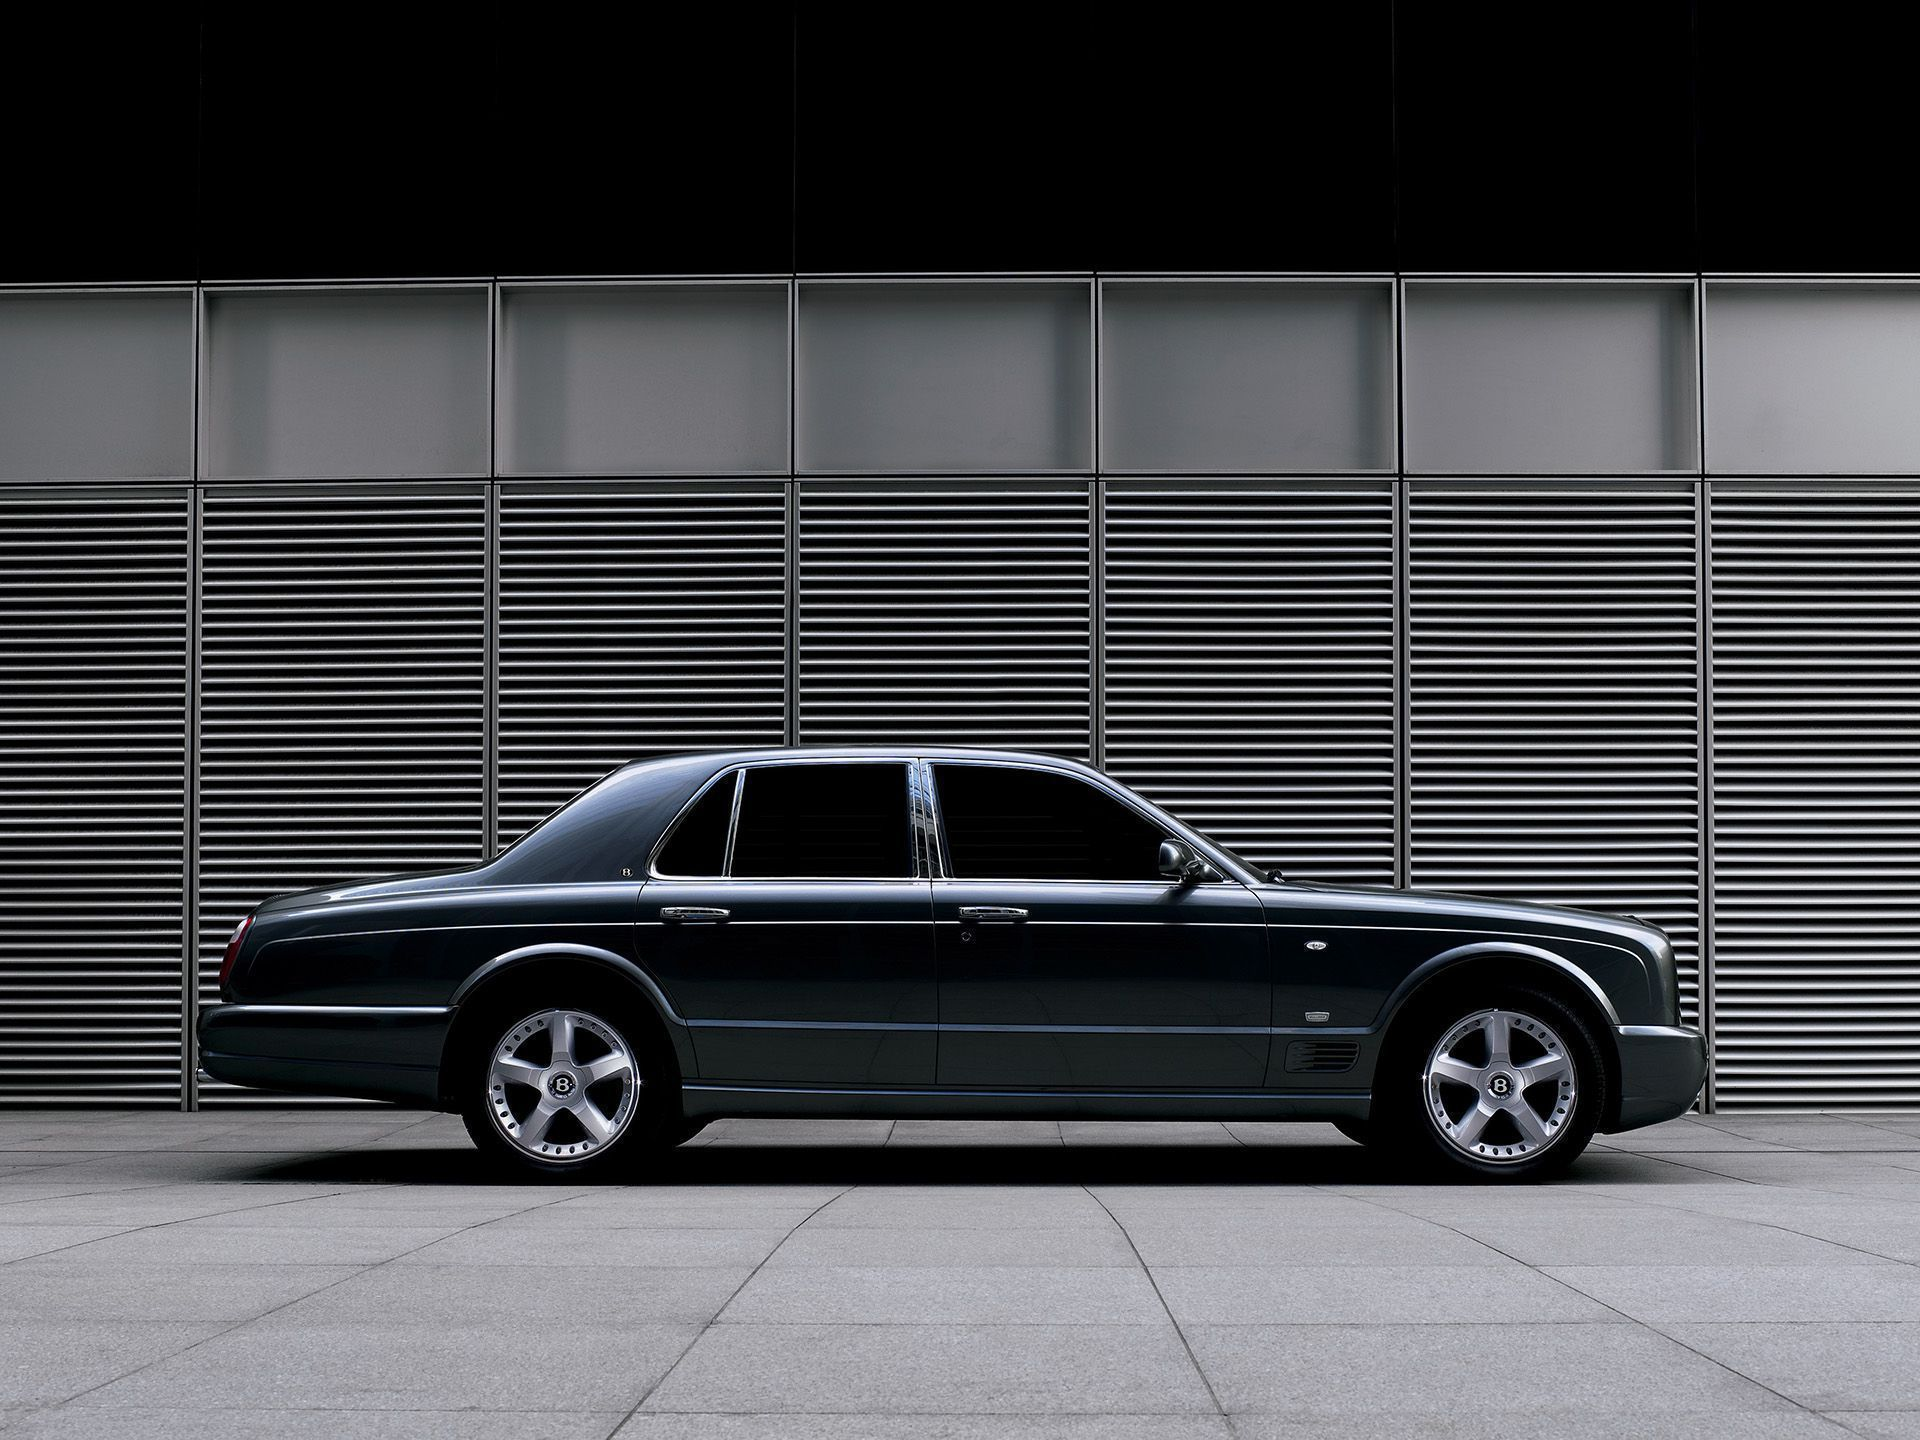 Bentley Arnage Wallpapers HD